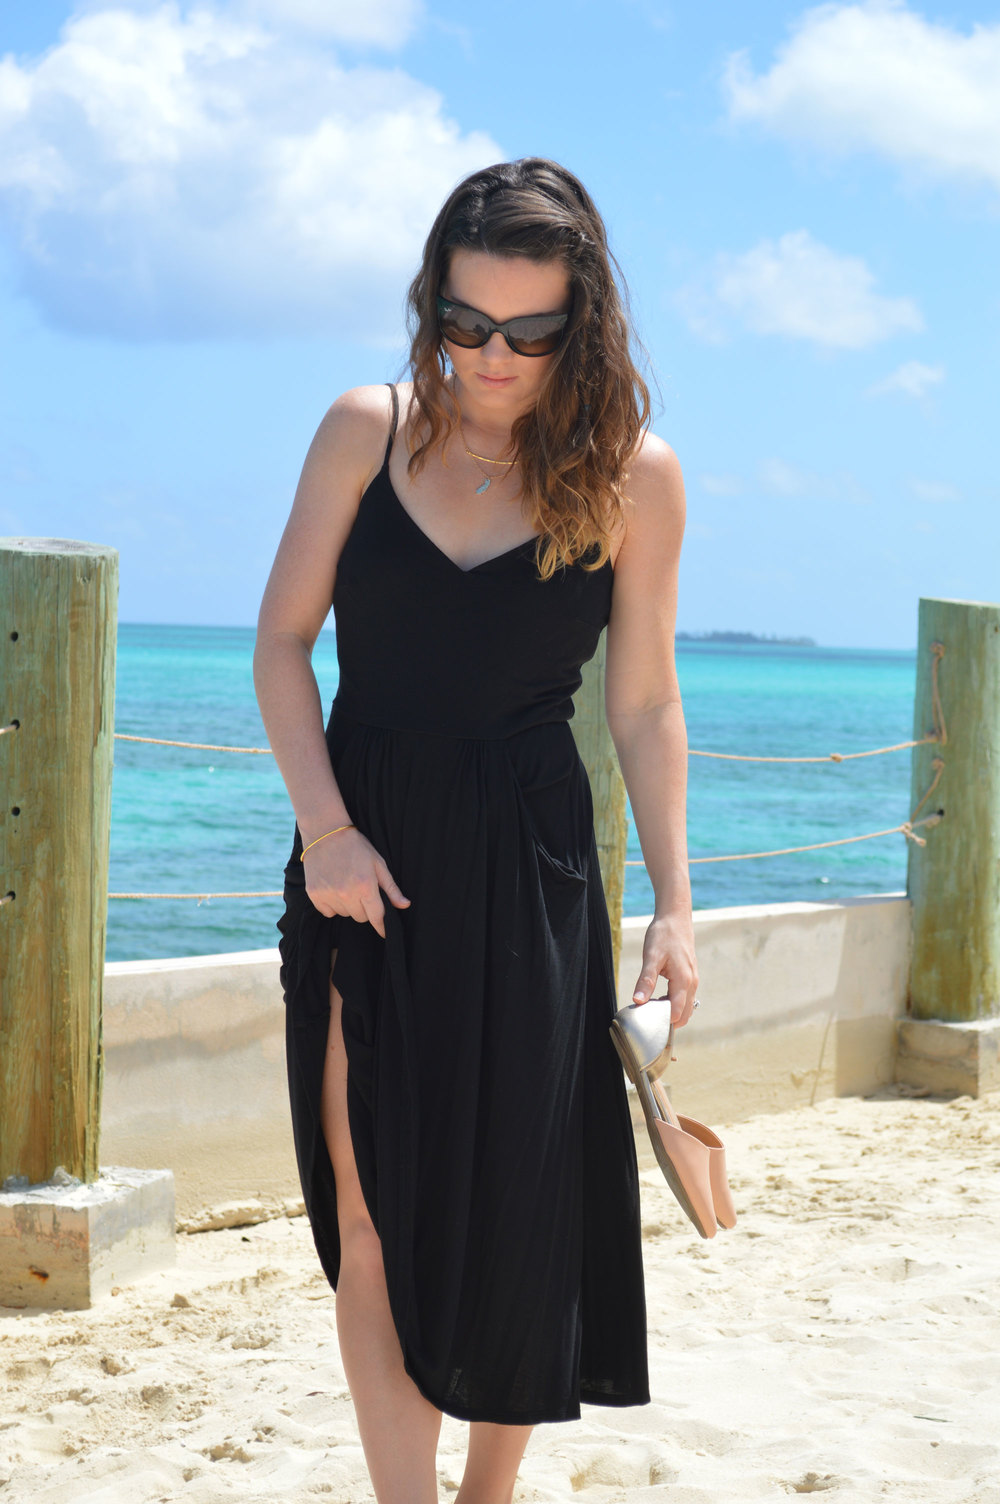 Ray-Ban-Cat-Sunglasses-Nassau-Bahamas-Top-Style-Blog-FromCtoC-Gorjana-Necklace.jpeg